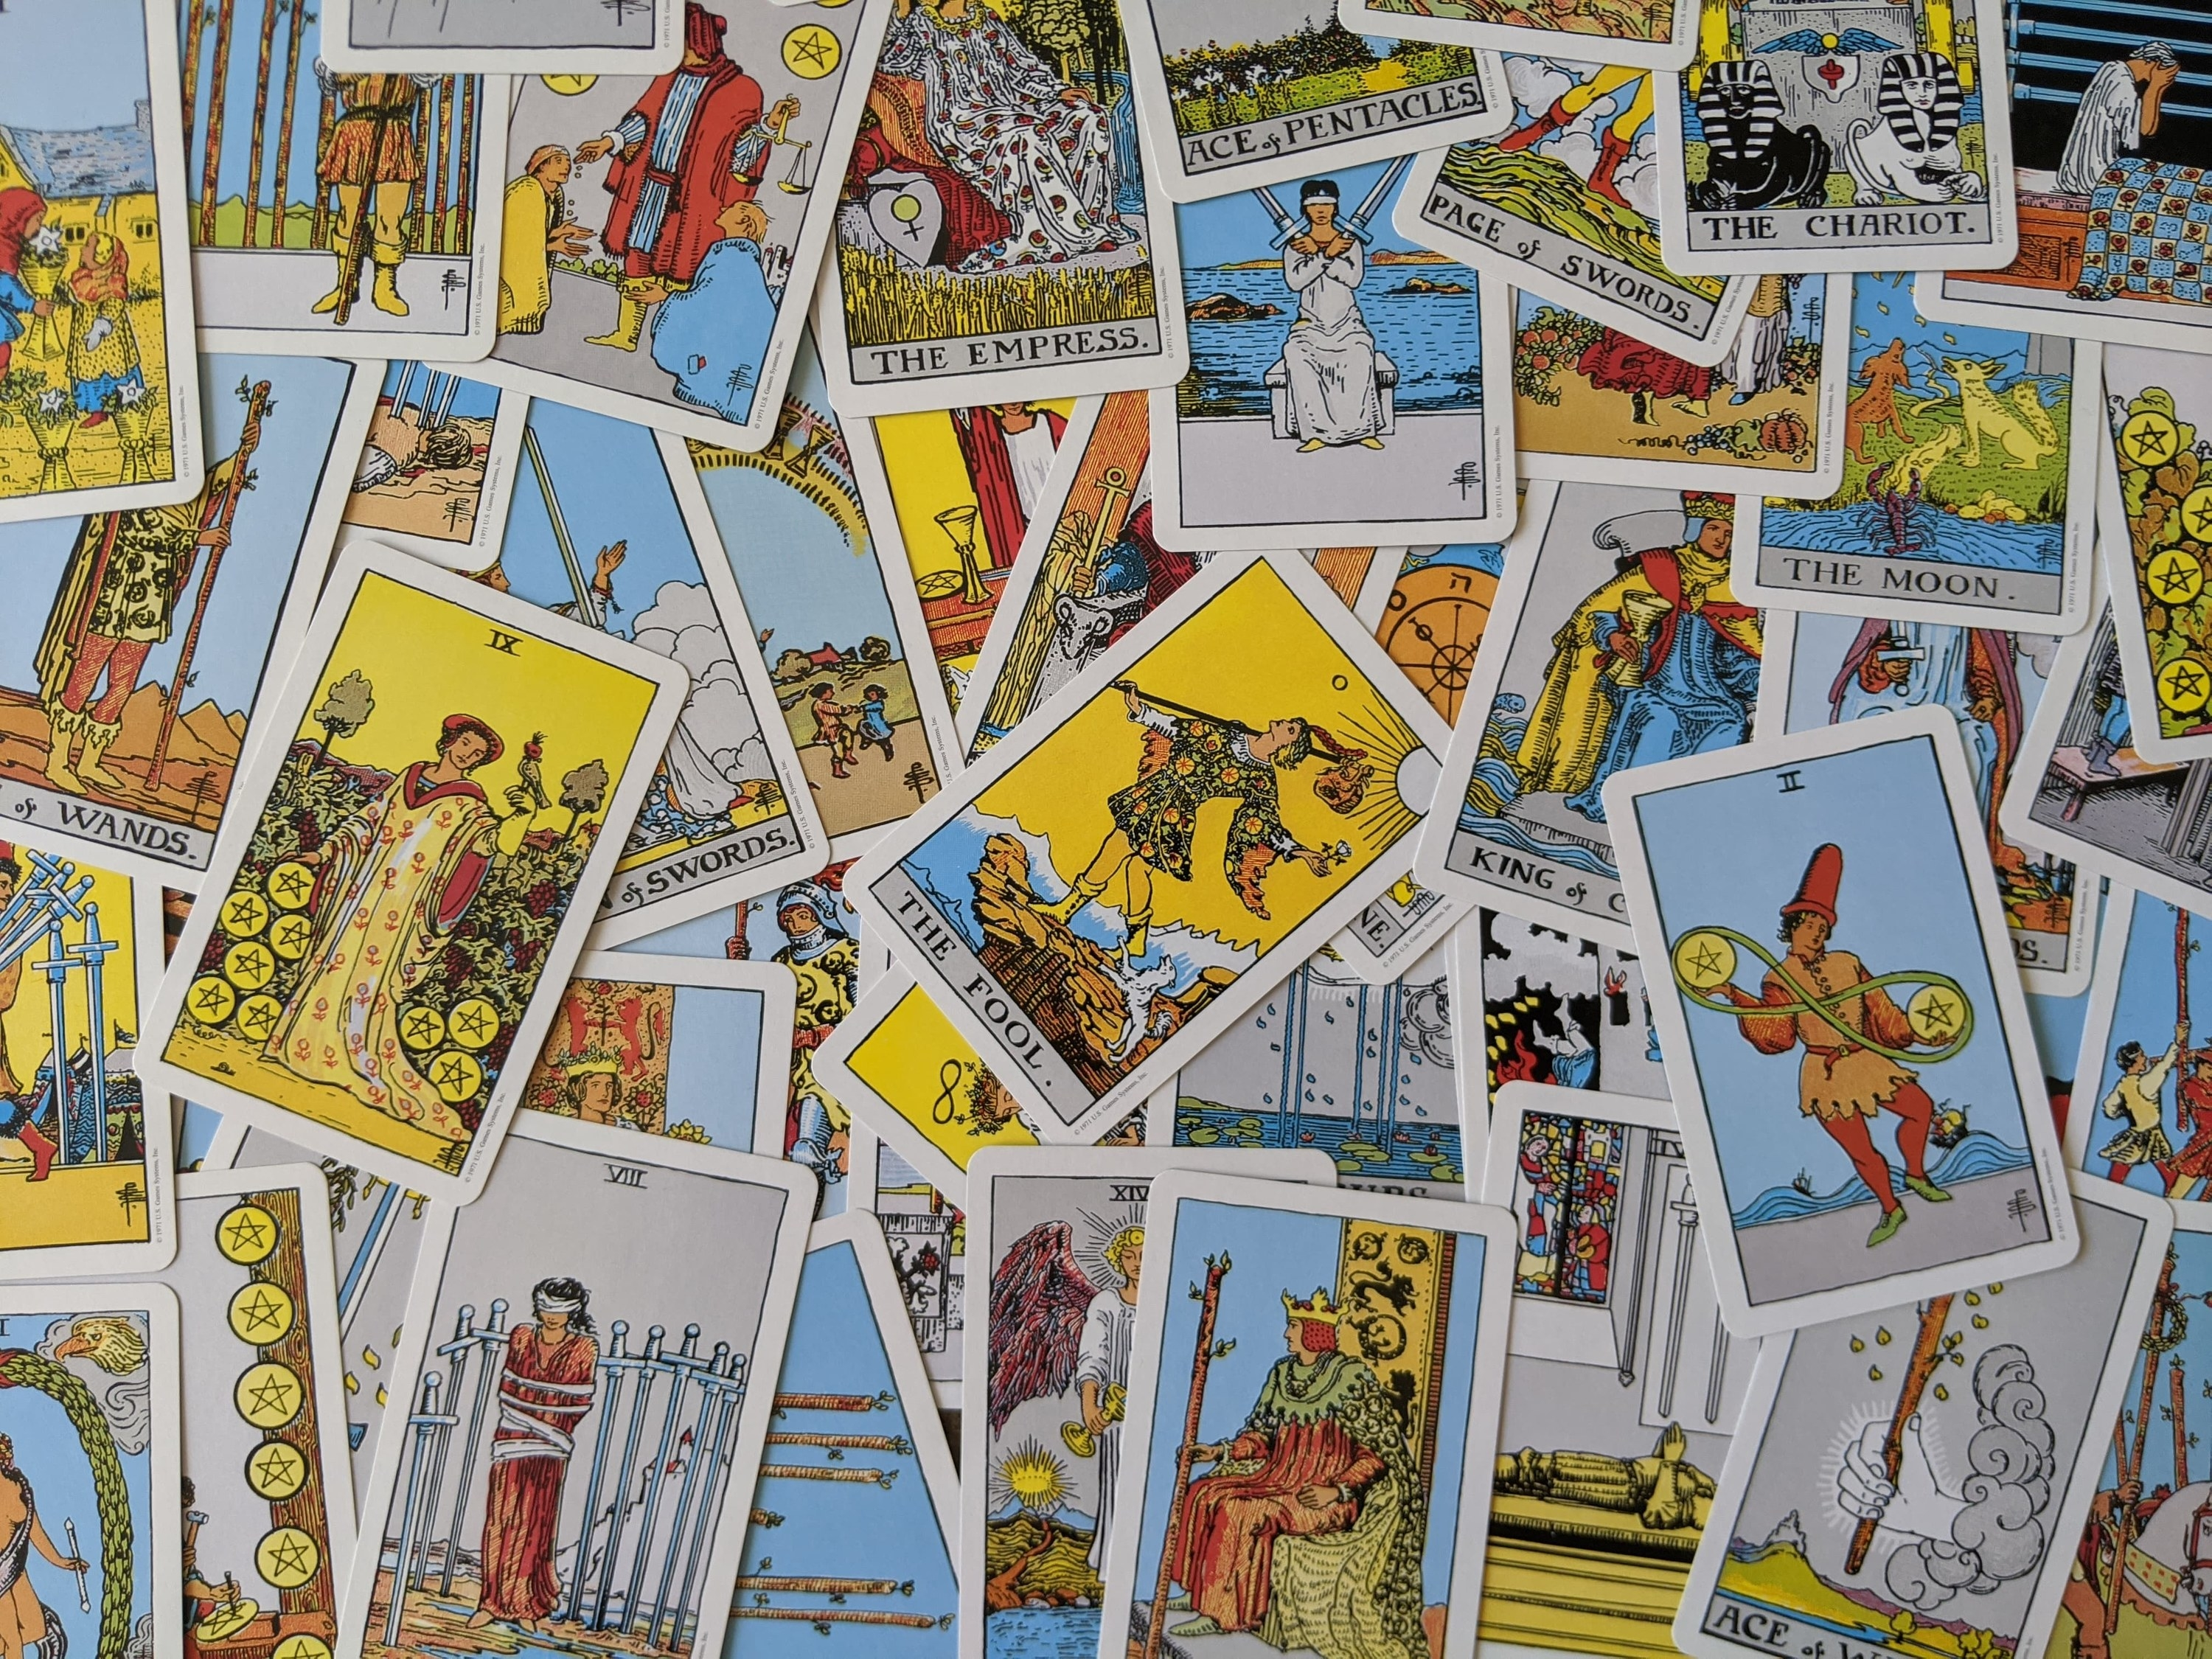 The cards of the Rider-Waite tarot deck are spread out, face up